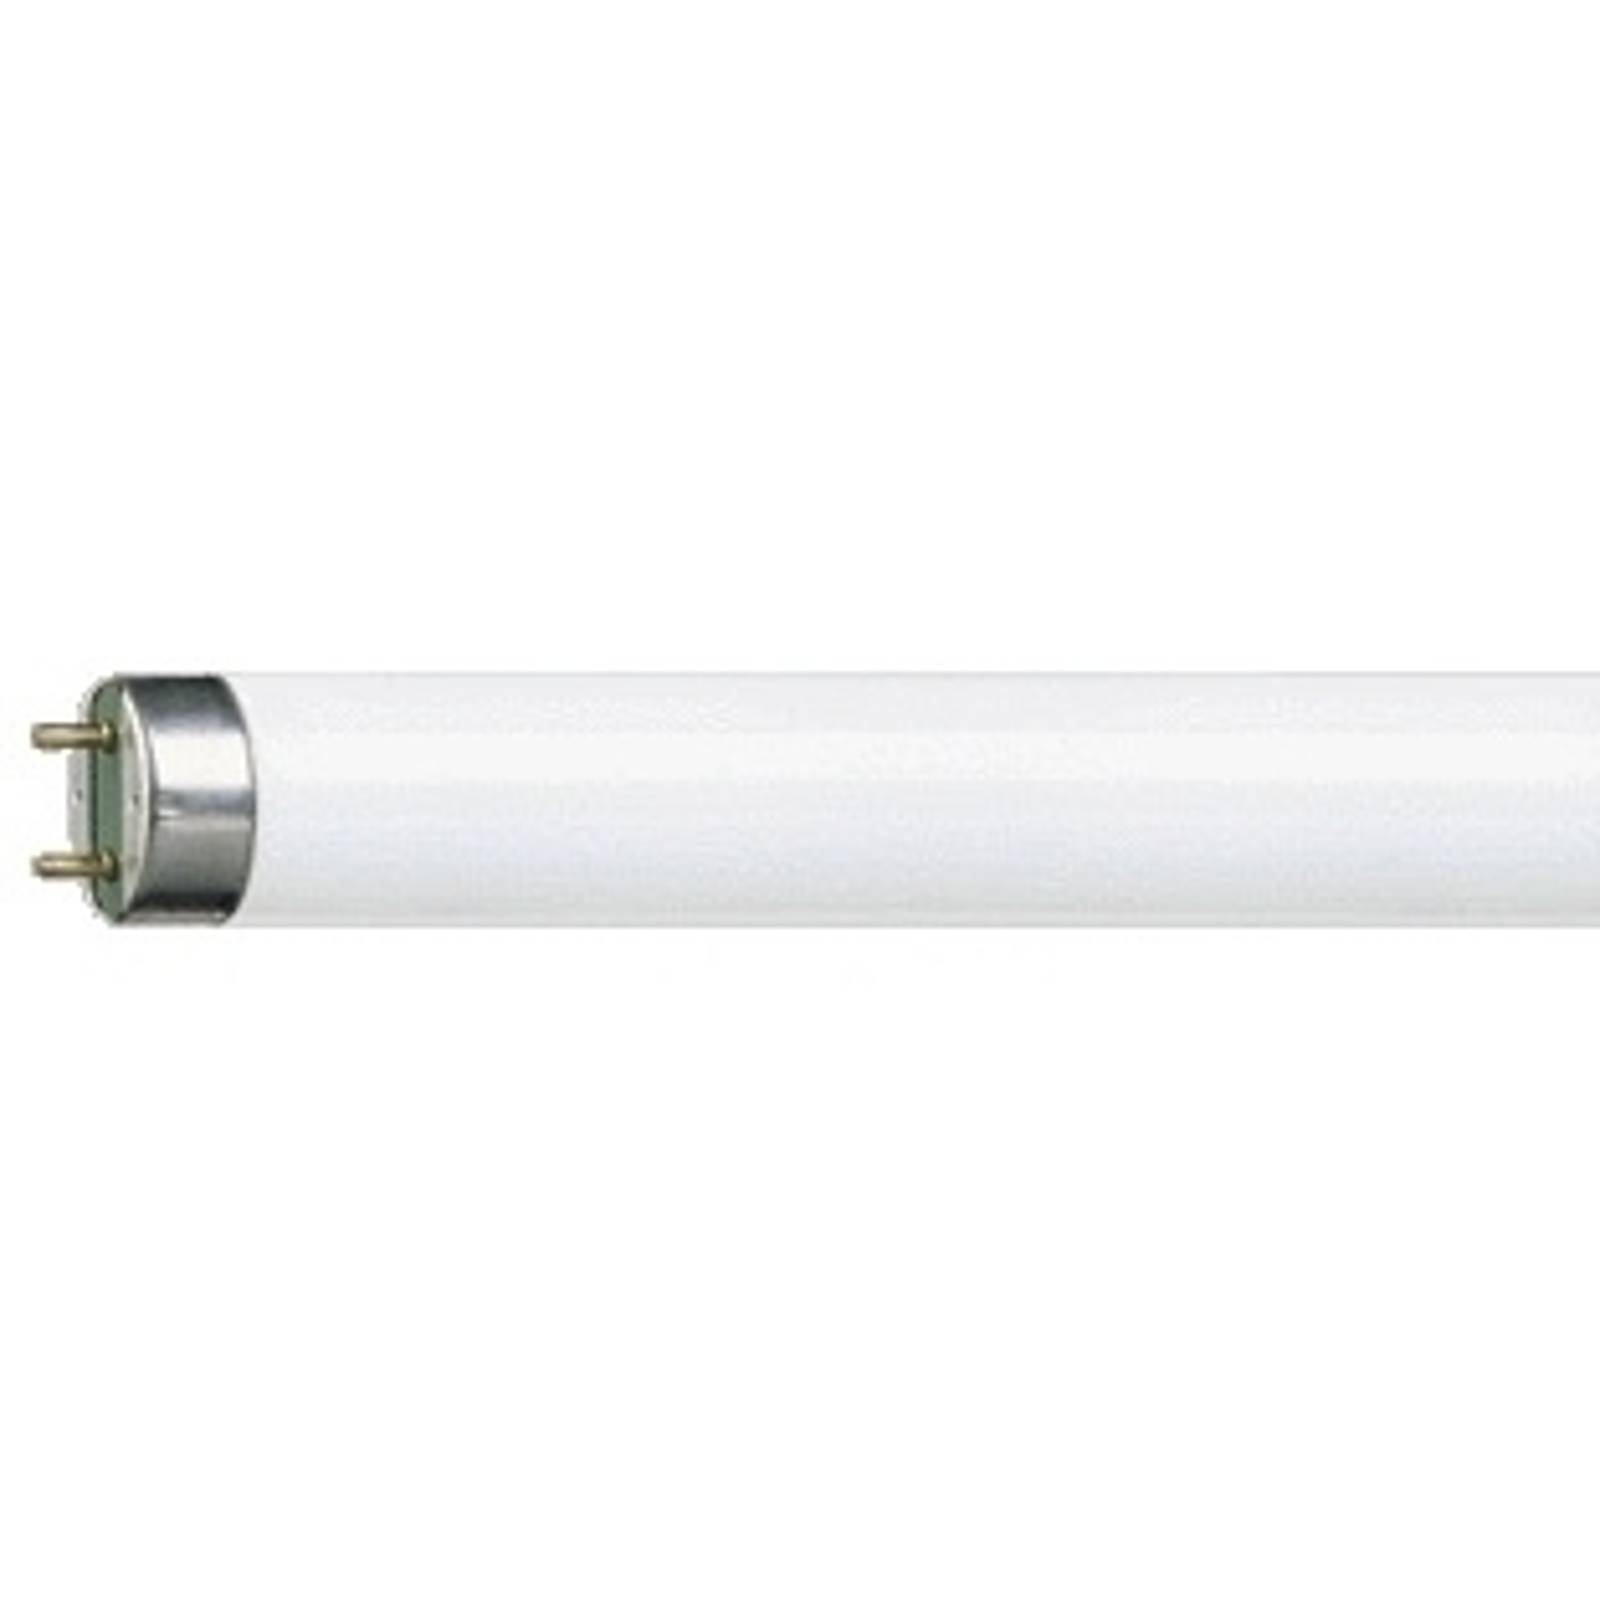 G13 T8 15W fluorescent bulb MASTER TL-D Super 840 from Philips